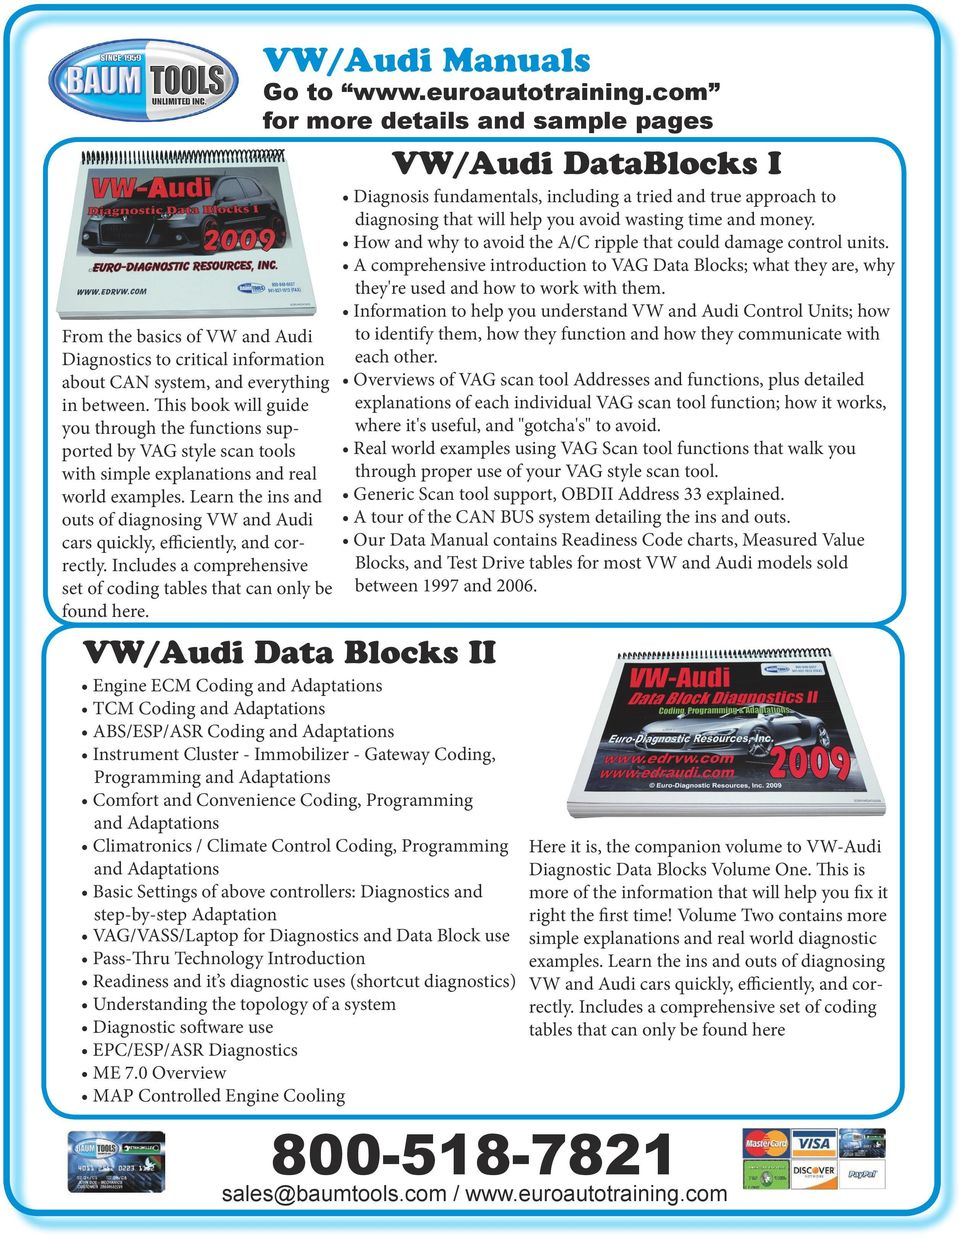 Diagnostic Manuals Engine Management Systems 396 Pages Data Blocks E36 Zke Wiring Diagram Learn The Ins And Outs Of Diagnosing Vw Audi Cars Quickly Efficiently